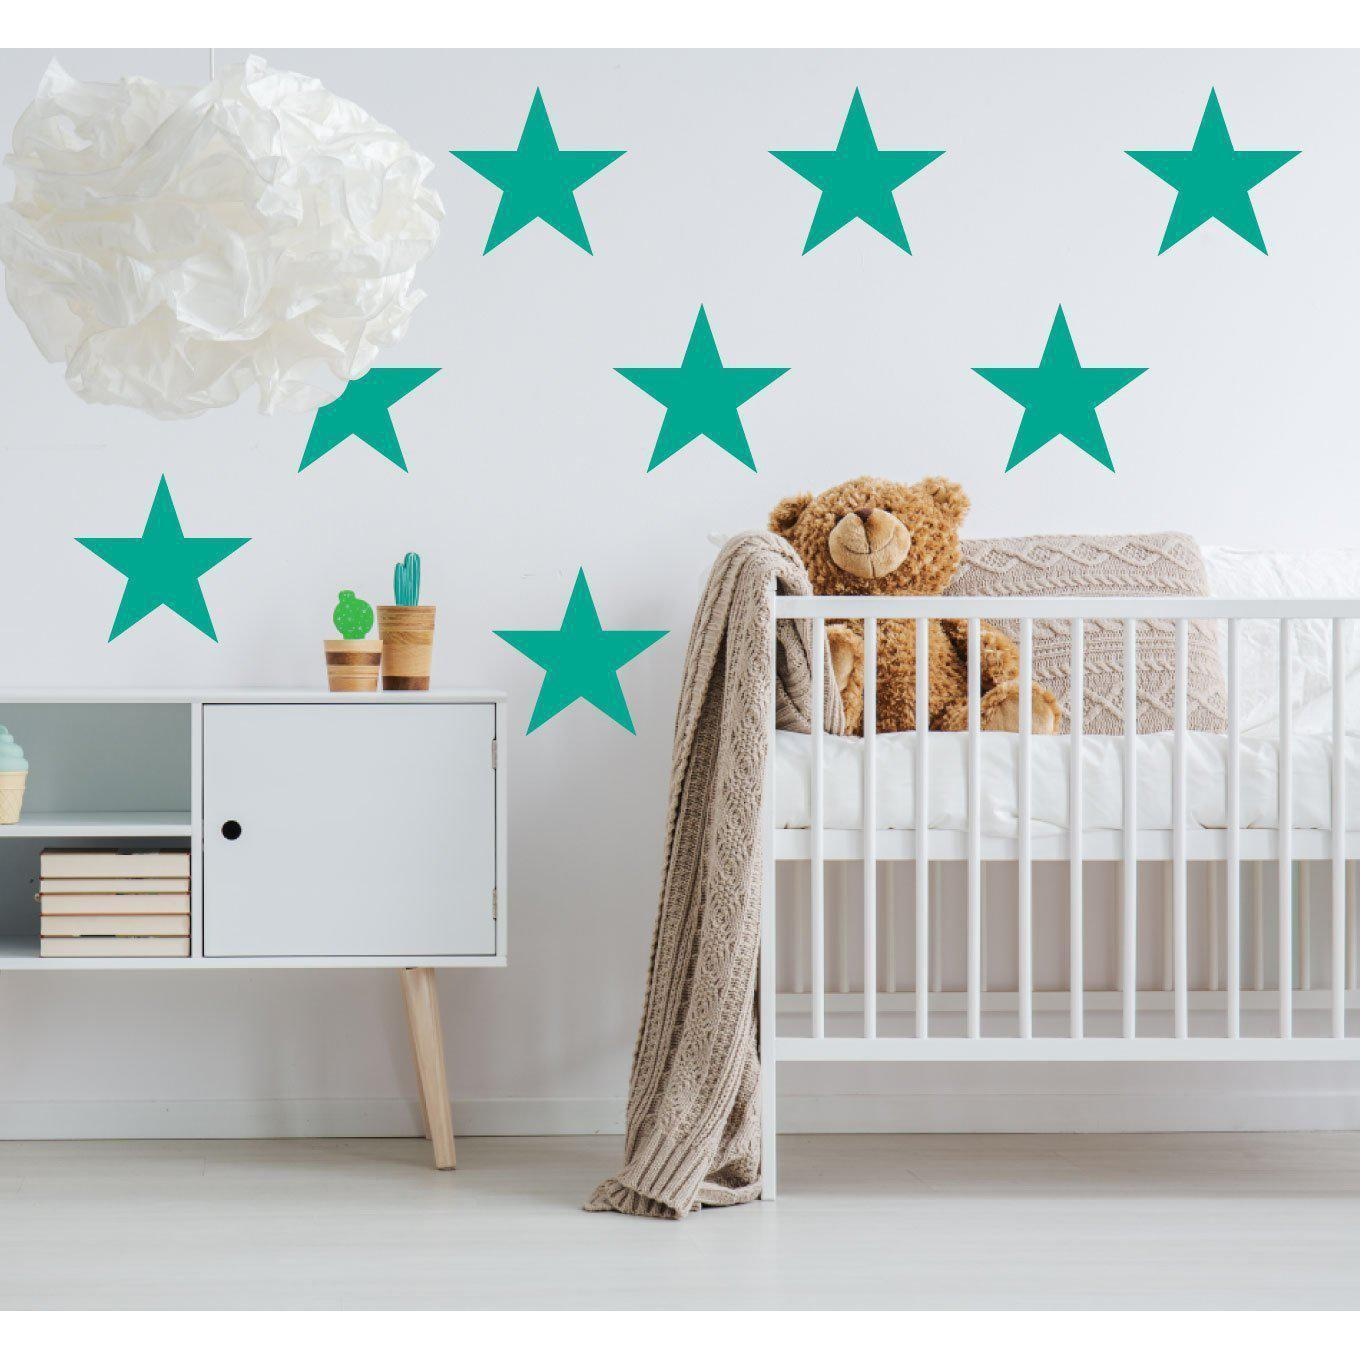 Nursery Wall Stickers 12 Extra Large Stars Wall Stickers Stars Wall Decals Home Decoration Wall Art Stickers